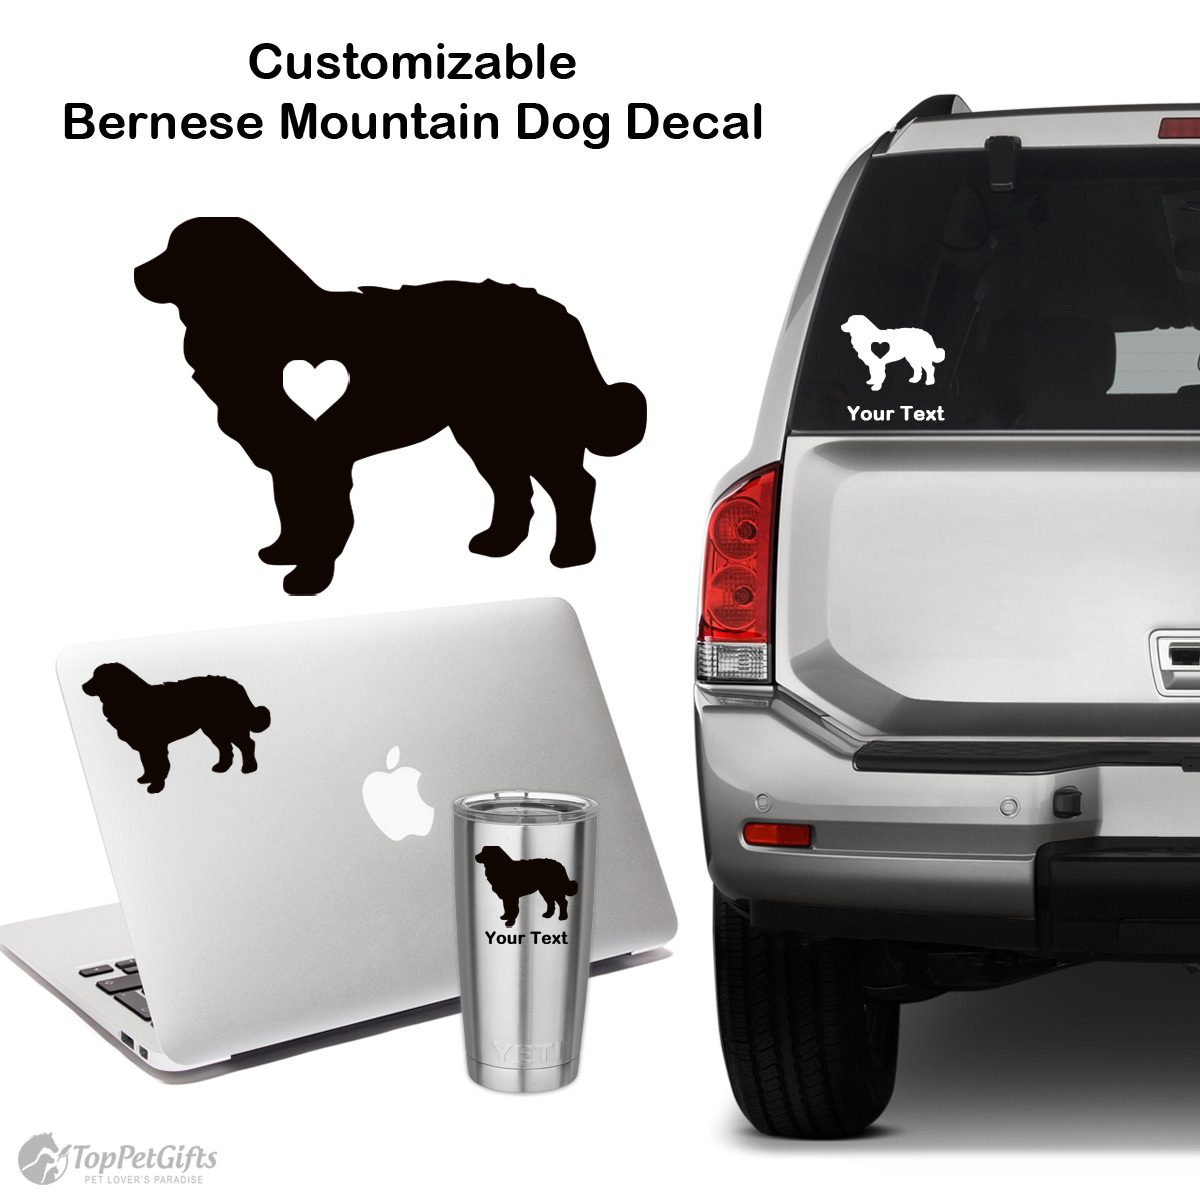 Personalized Bernese Mountain Dog Decal